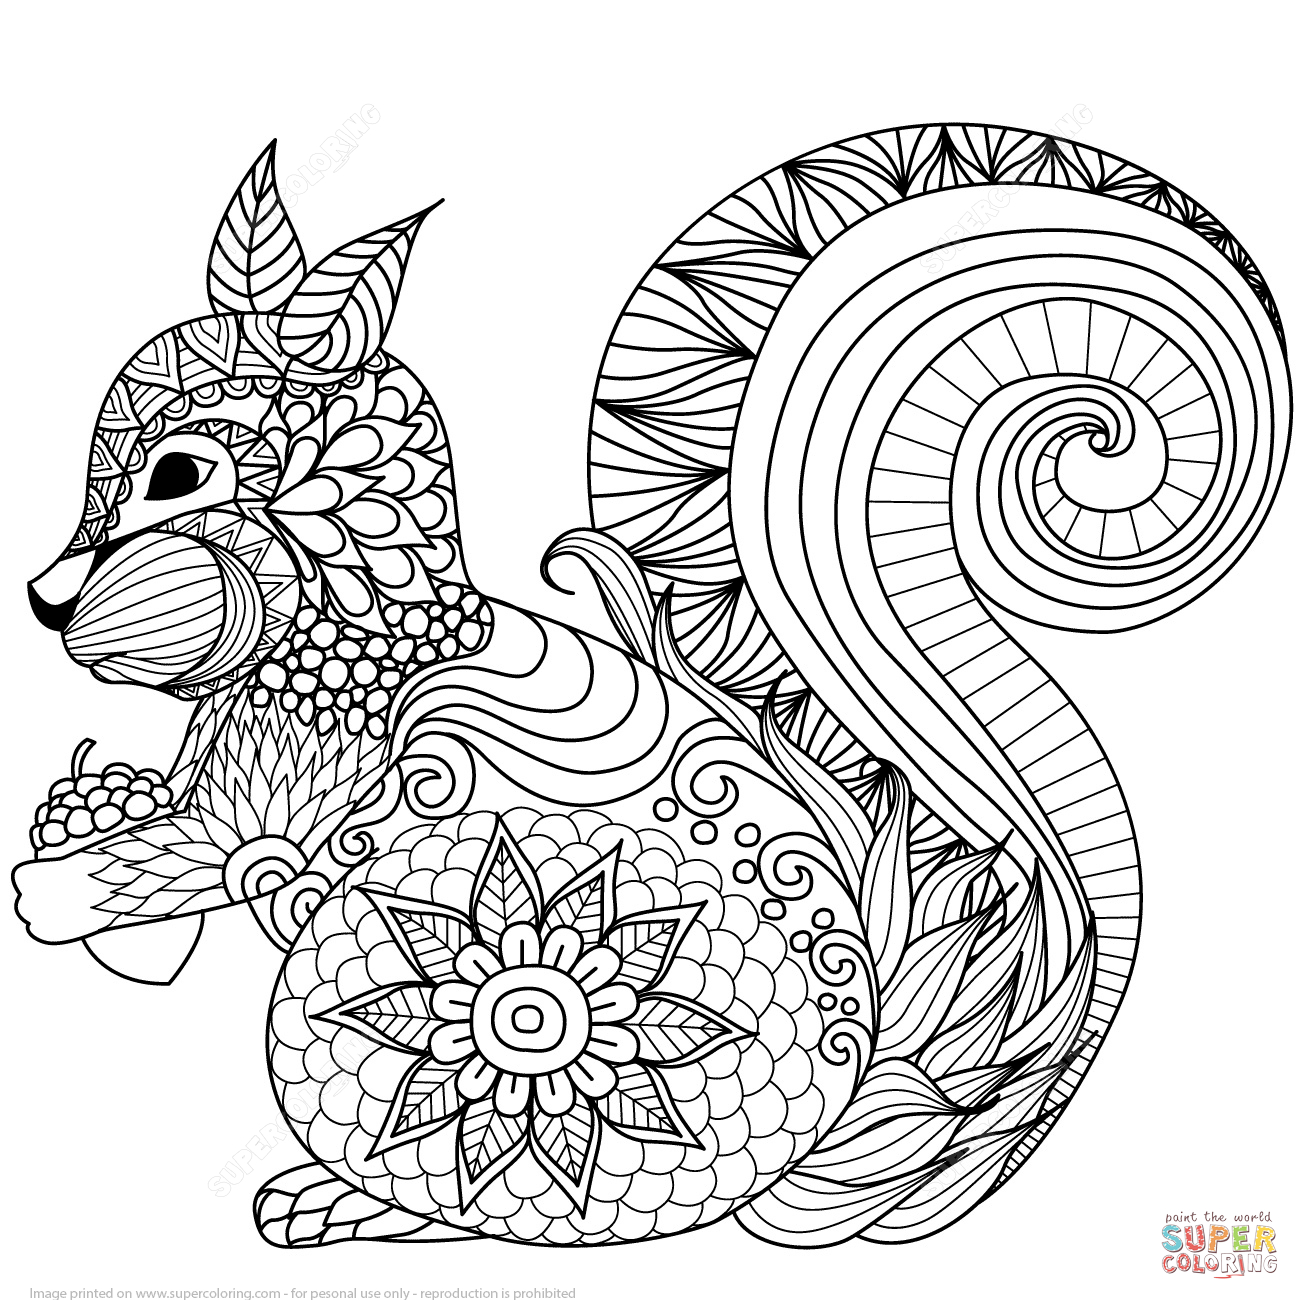 Lovely Squirrel Zentangle Coloring Page | Free Printable Coloring Pages - Free Printable Zen Coloring Pages